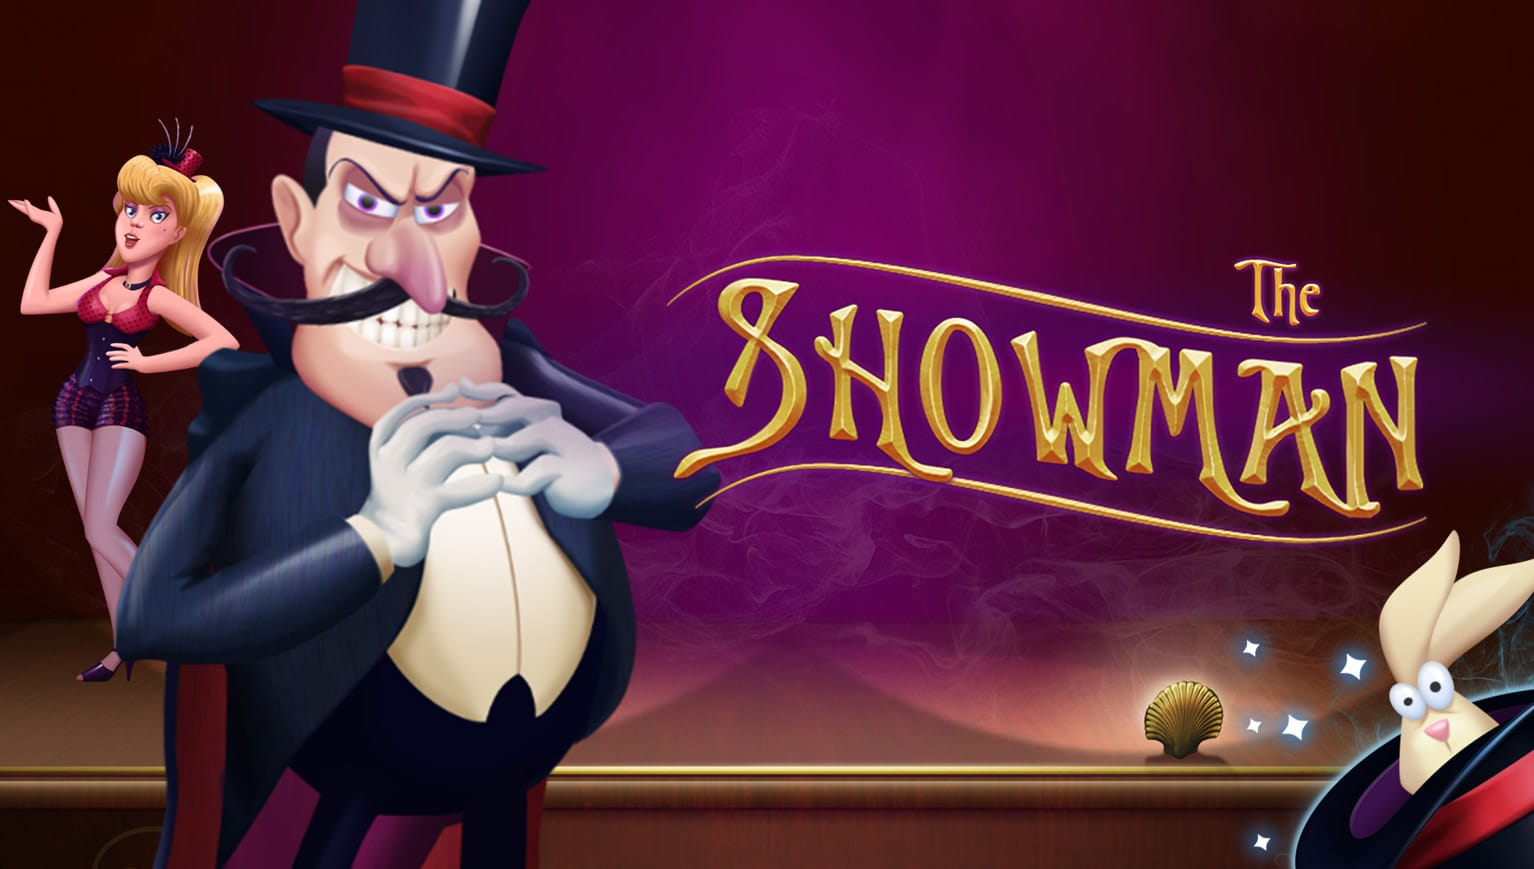 The Showman Logo